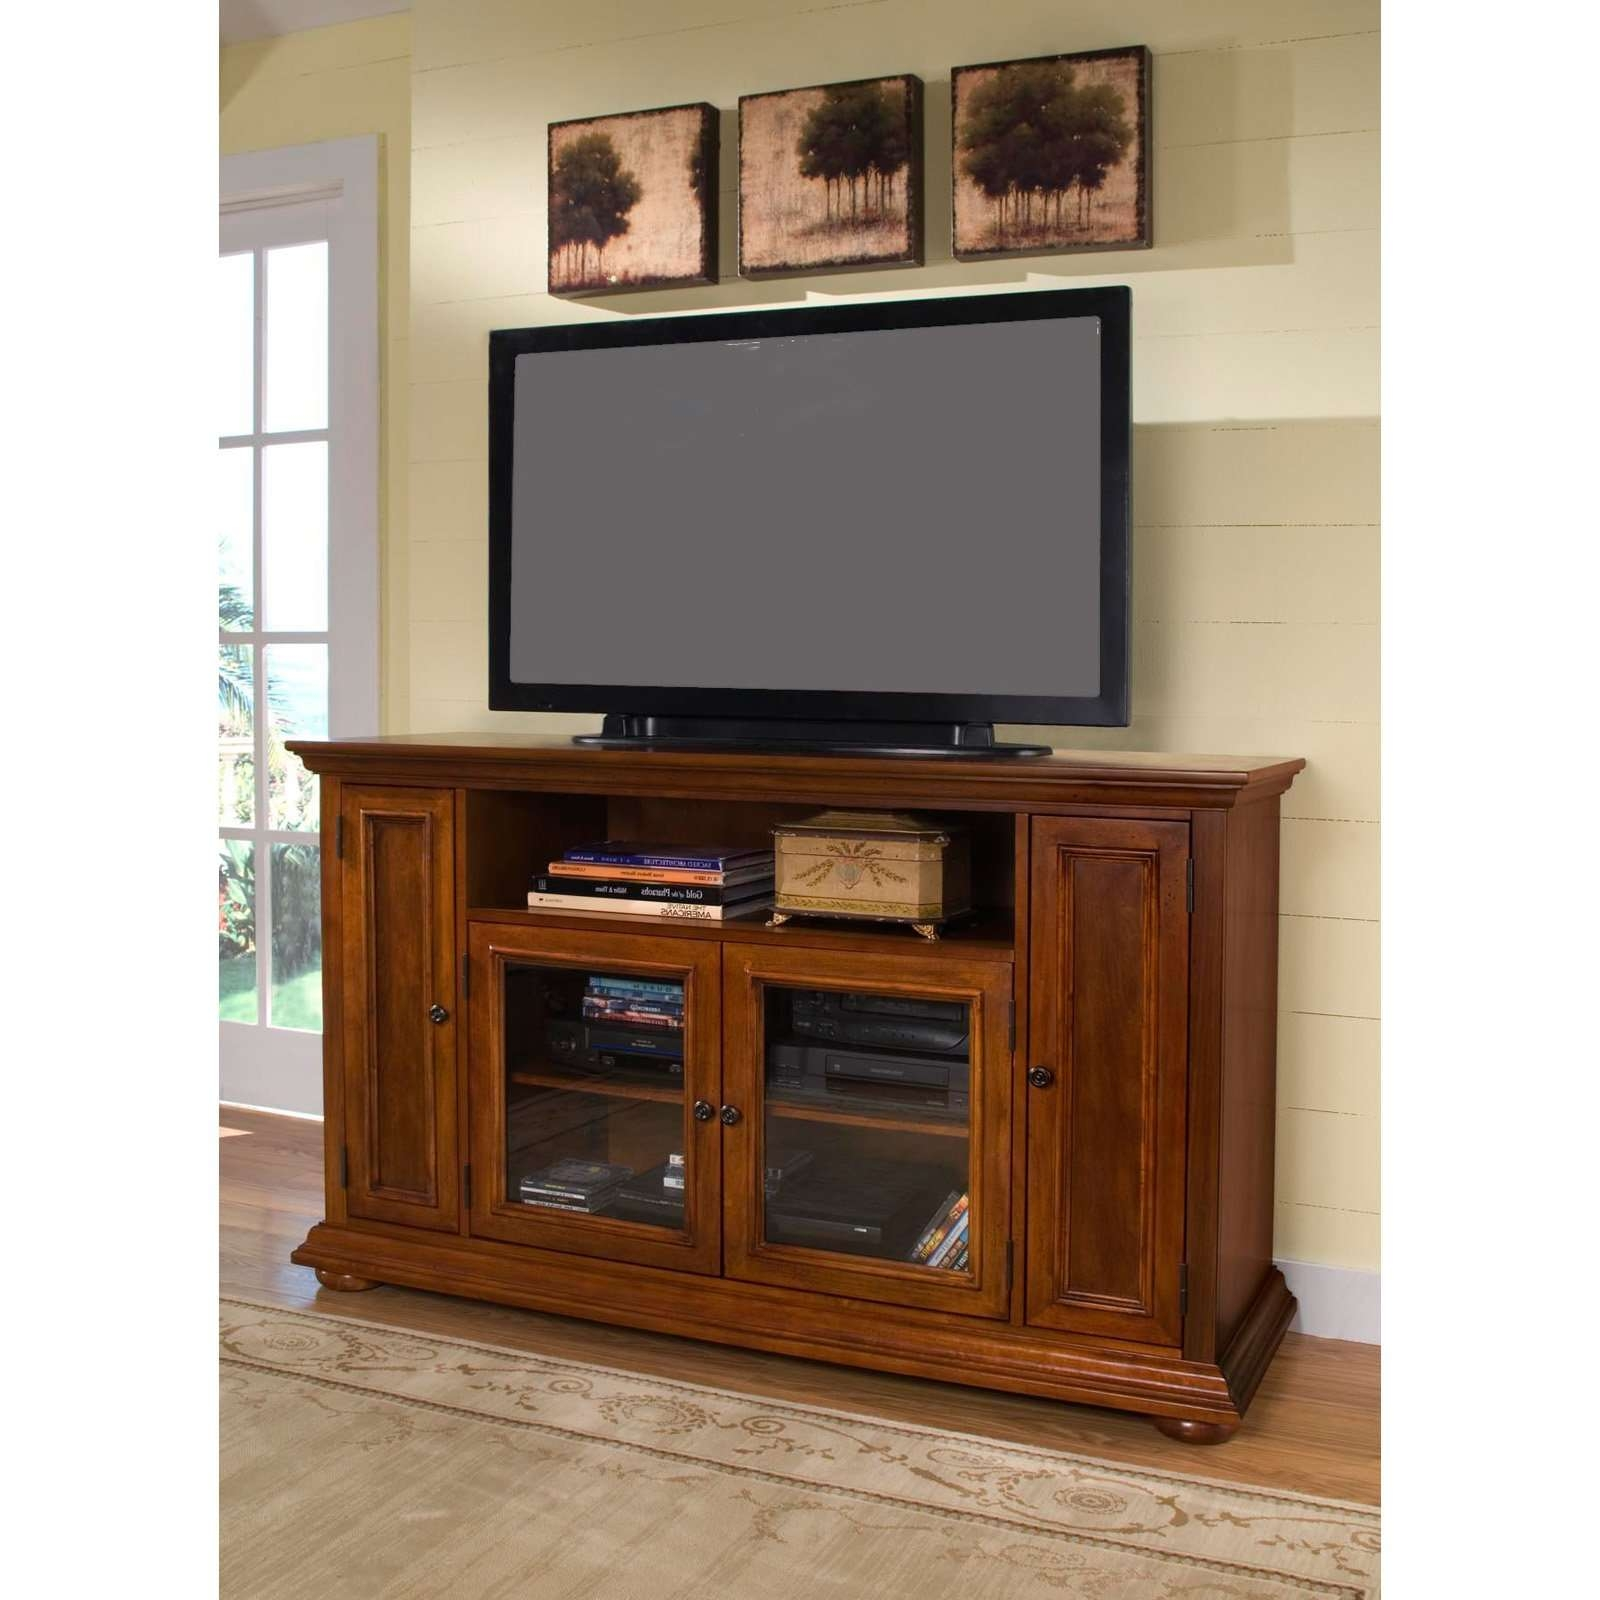 Home Decor: Marvelous Wood Tv Stands For Flat Screens Plus Light In Oak Tv Stands For Flat Screens (View 5 of 15)